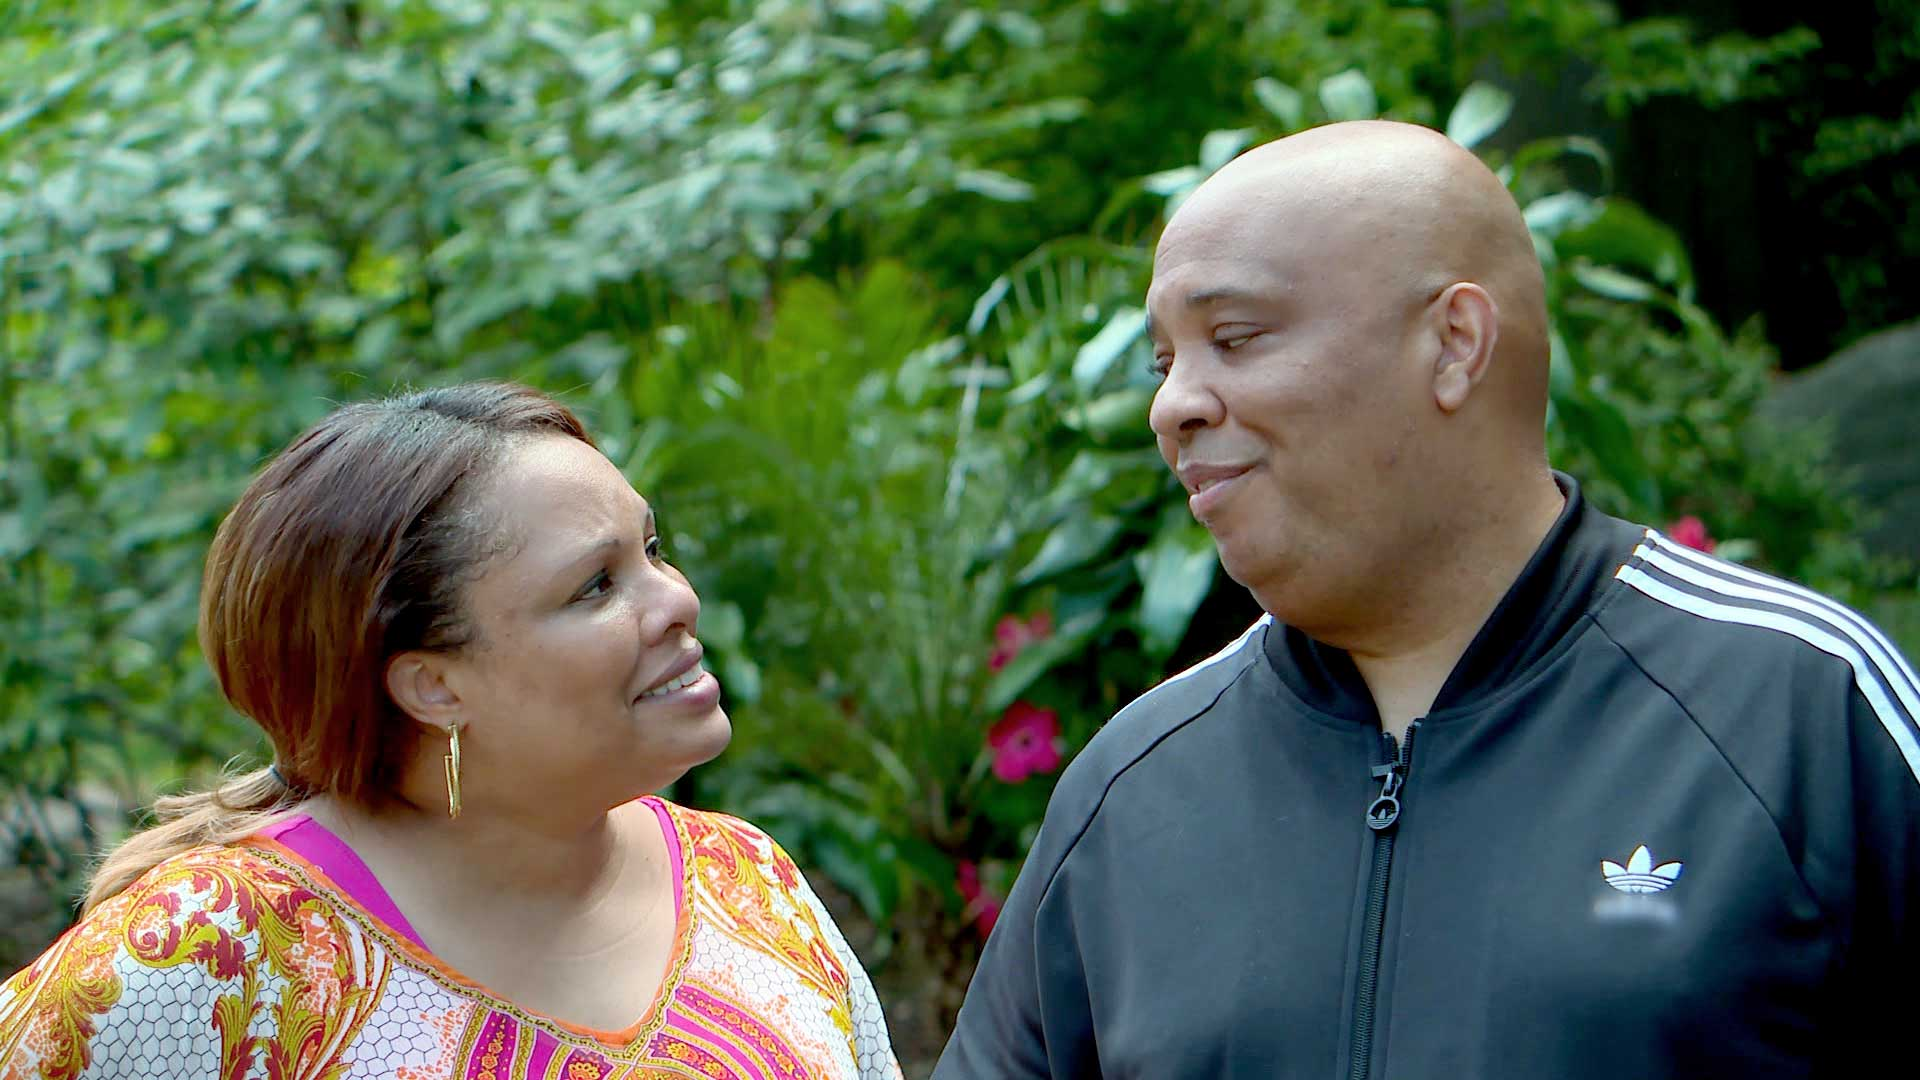 Rev Run and Justine Simmons reflect on their trip to Jamaica with smiles.